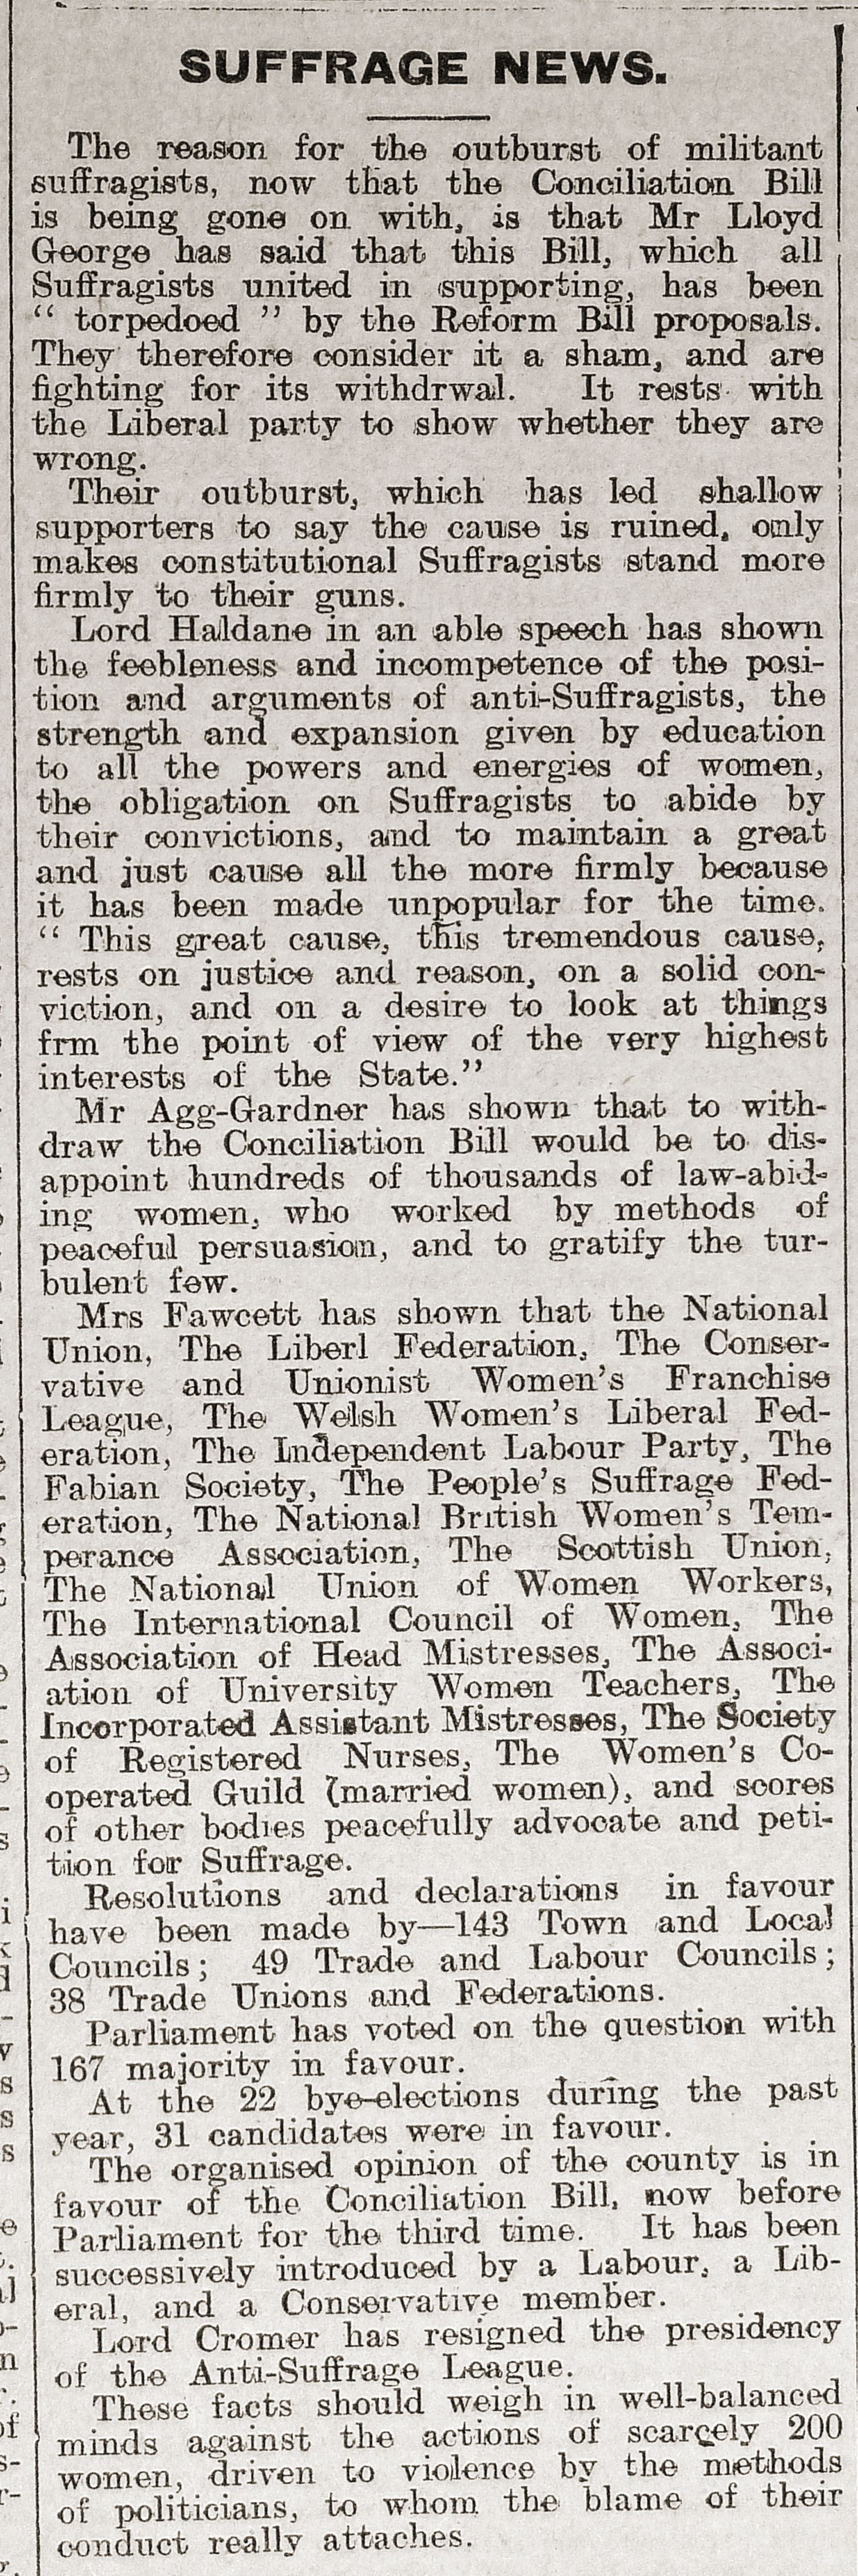 Pro-suffrage newspaper article, 'Shetland News', 23 March 1912